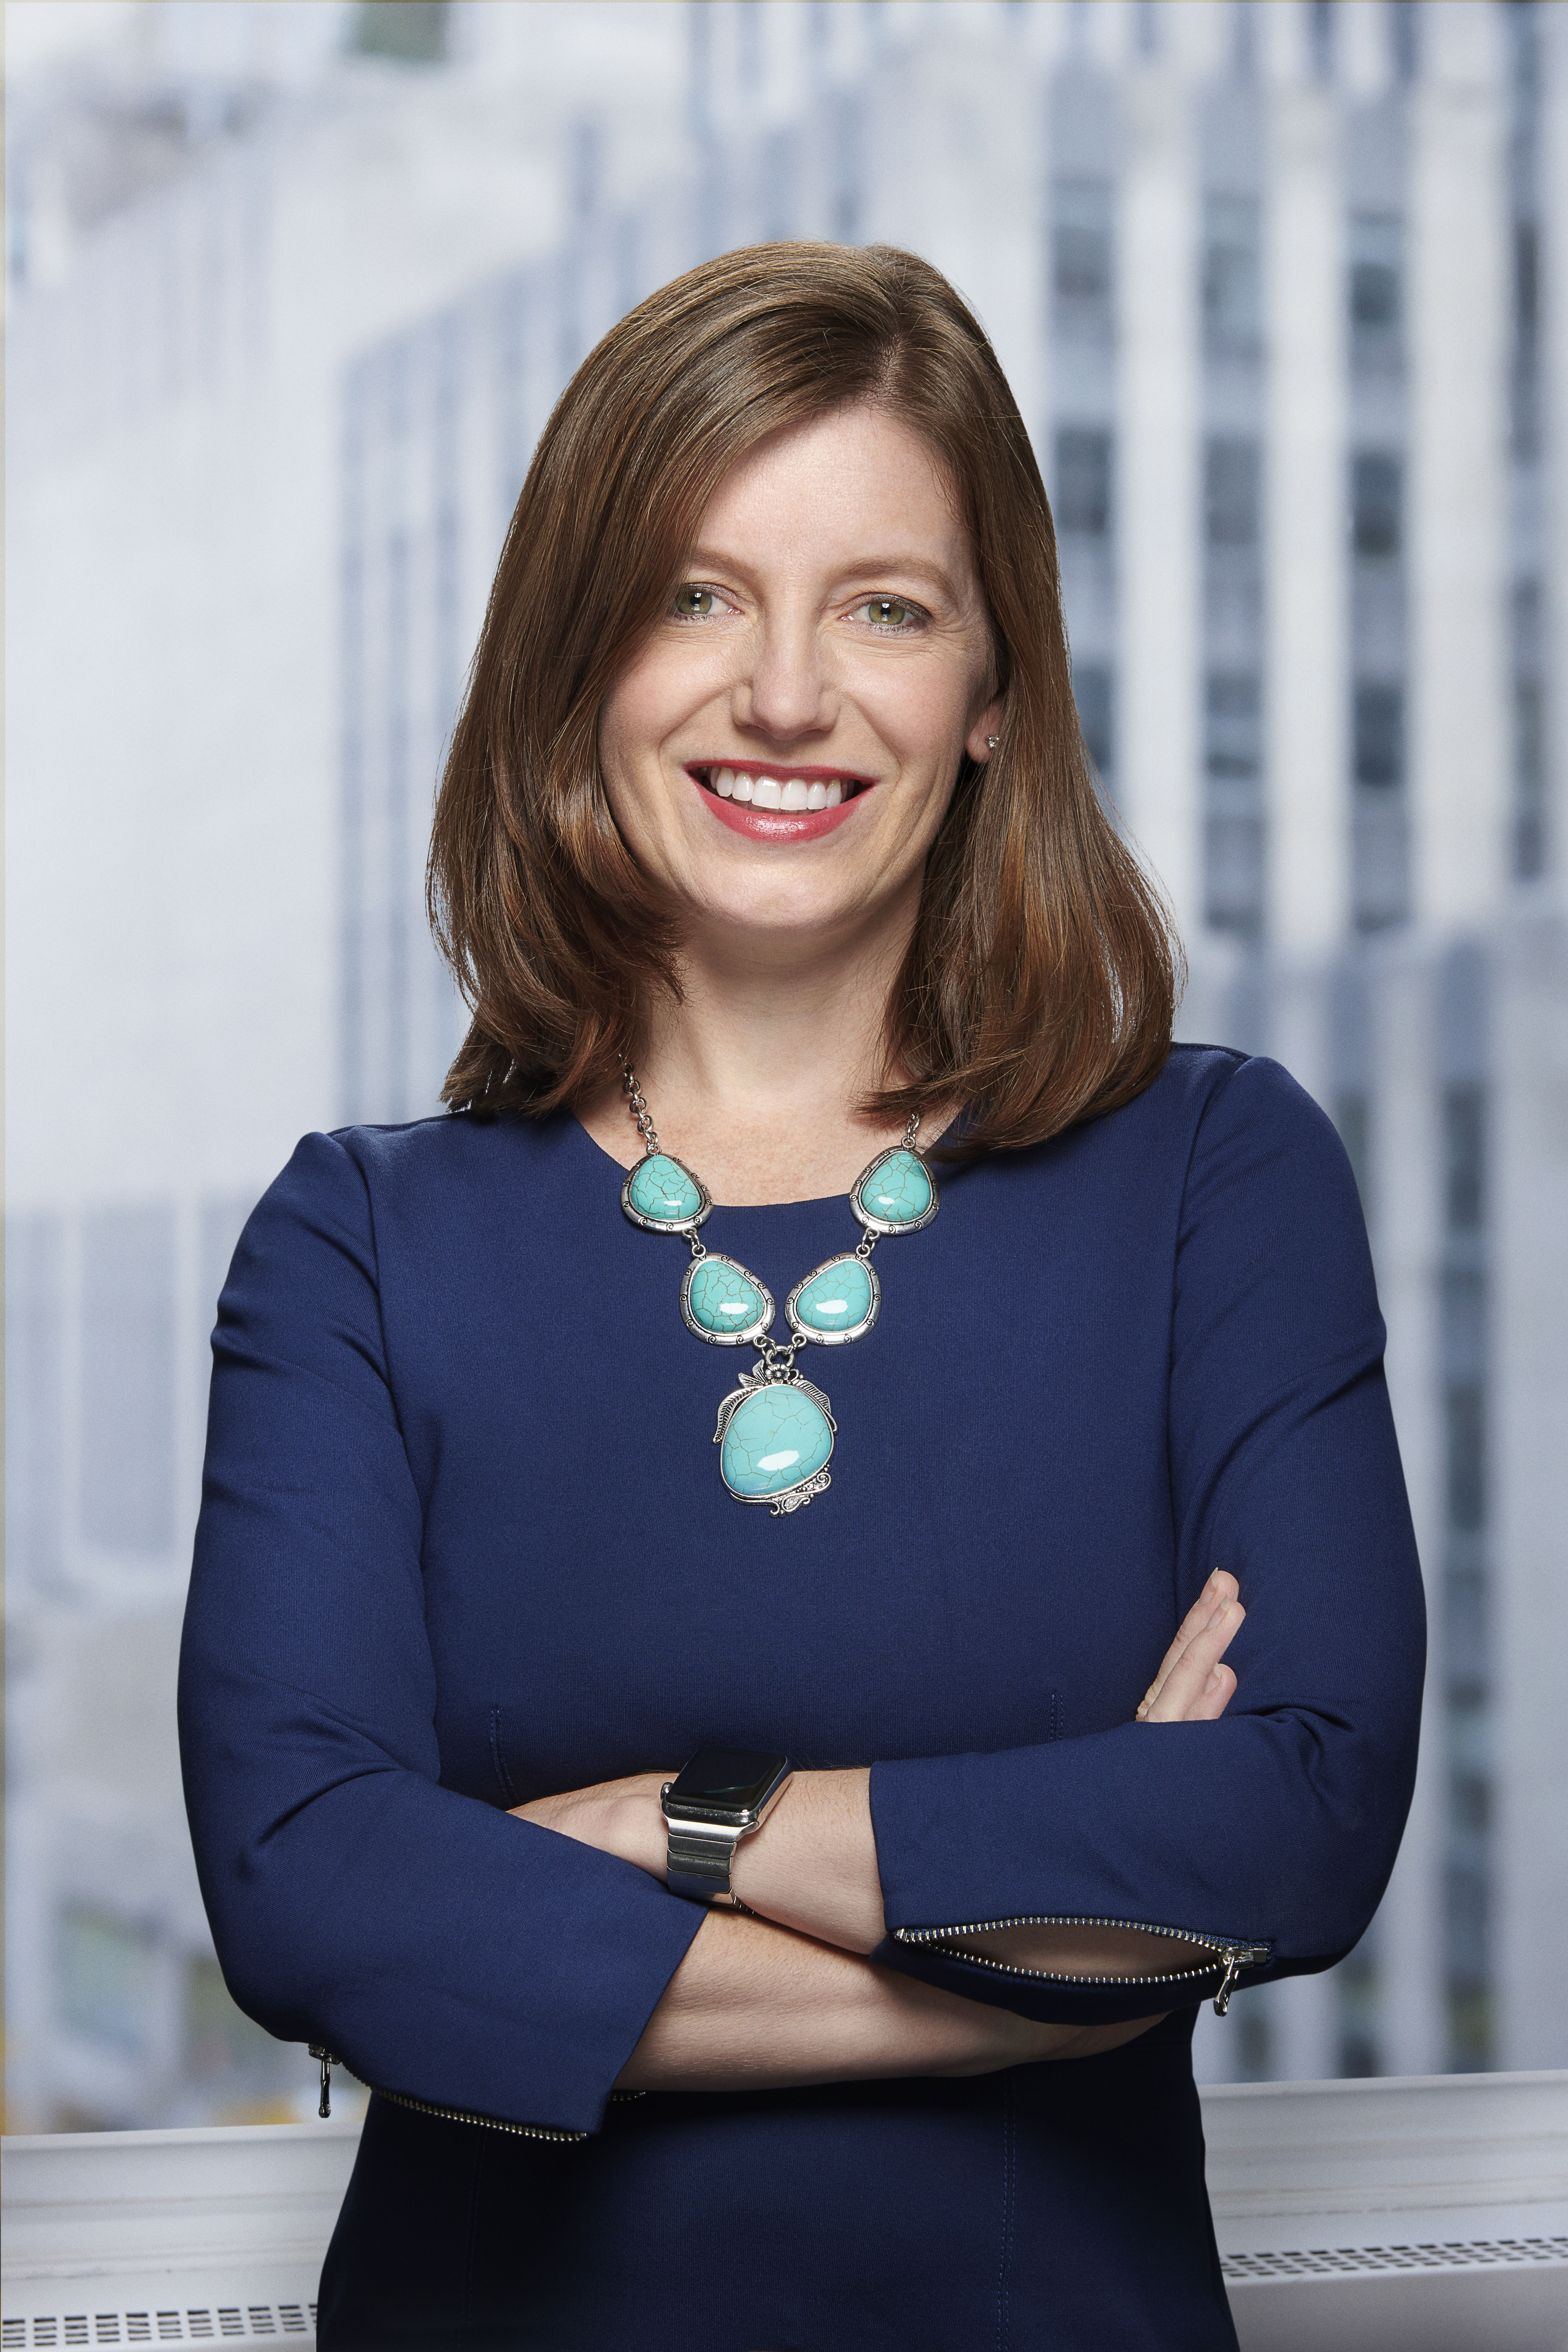 Cover image for  article: AT&T's Christina Beaumier on Speaking the Language of TV and Digital